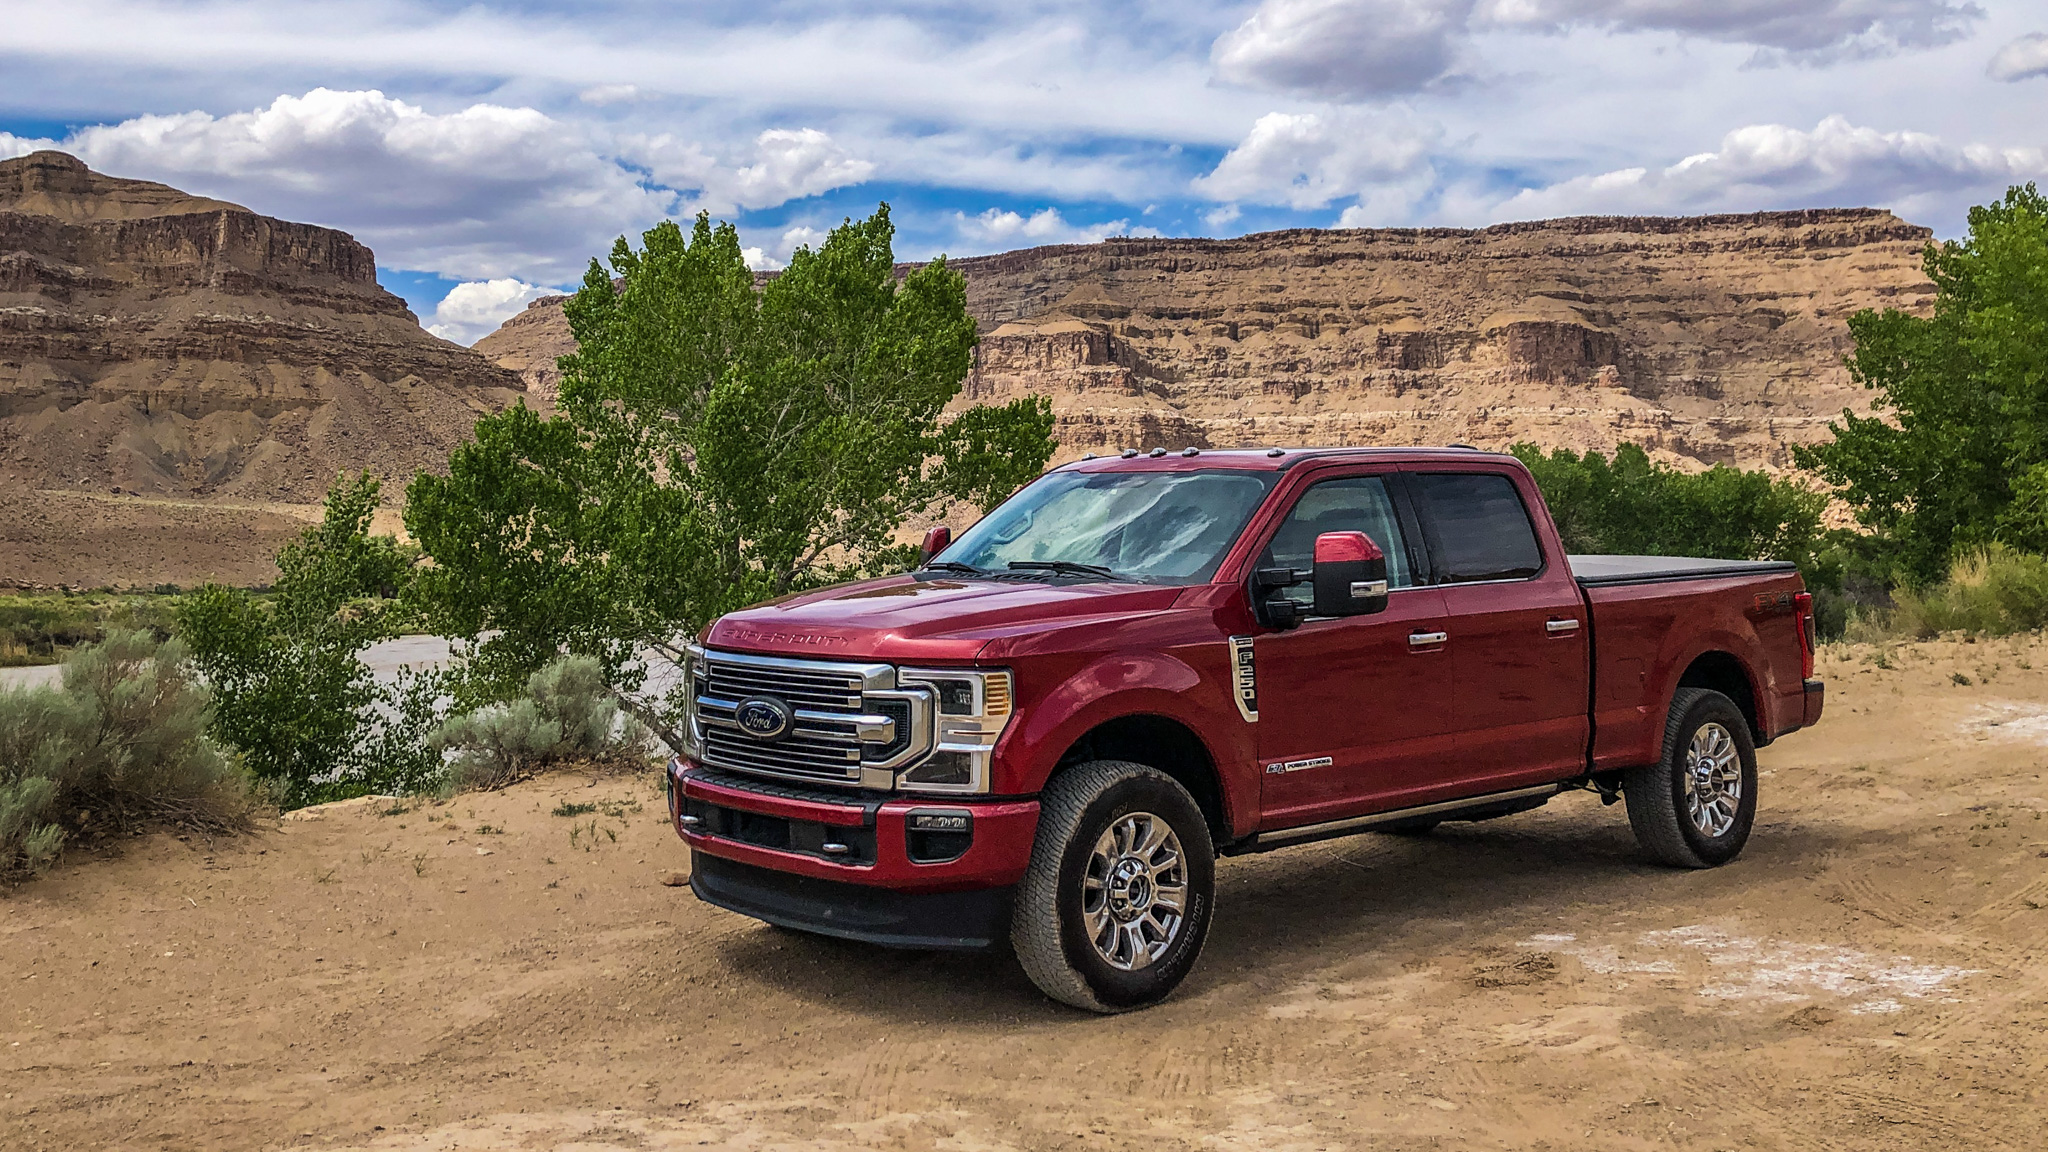 25,000 Miles Later: Mostly Praise For Our Power Stroke-Equipped Super Duty Limited